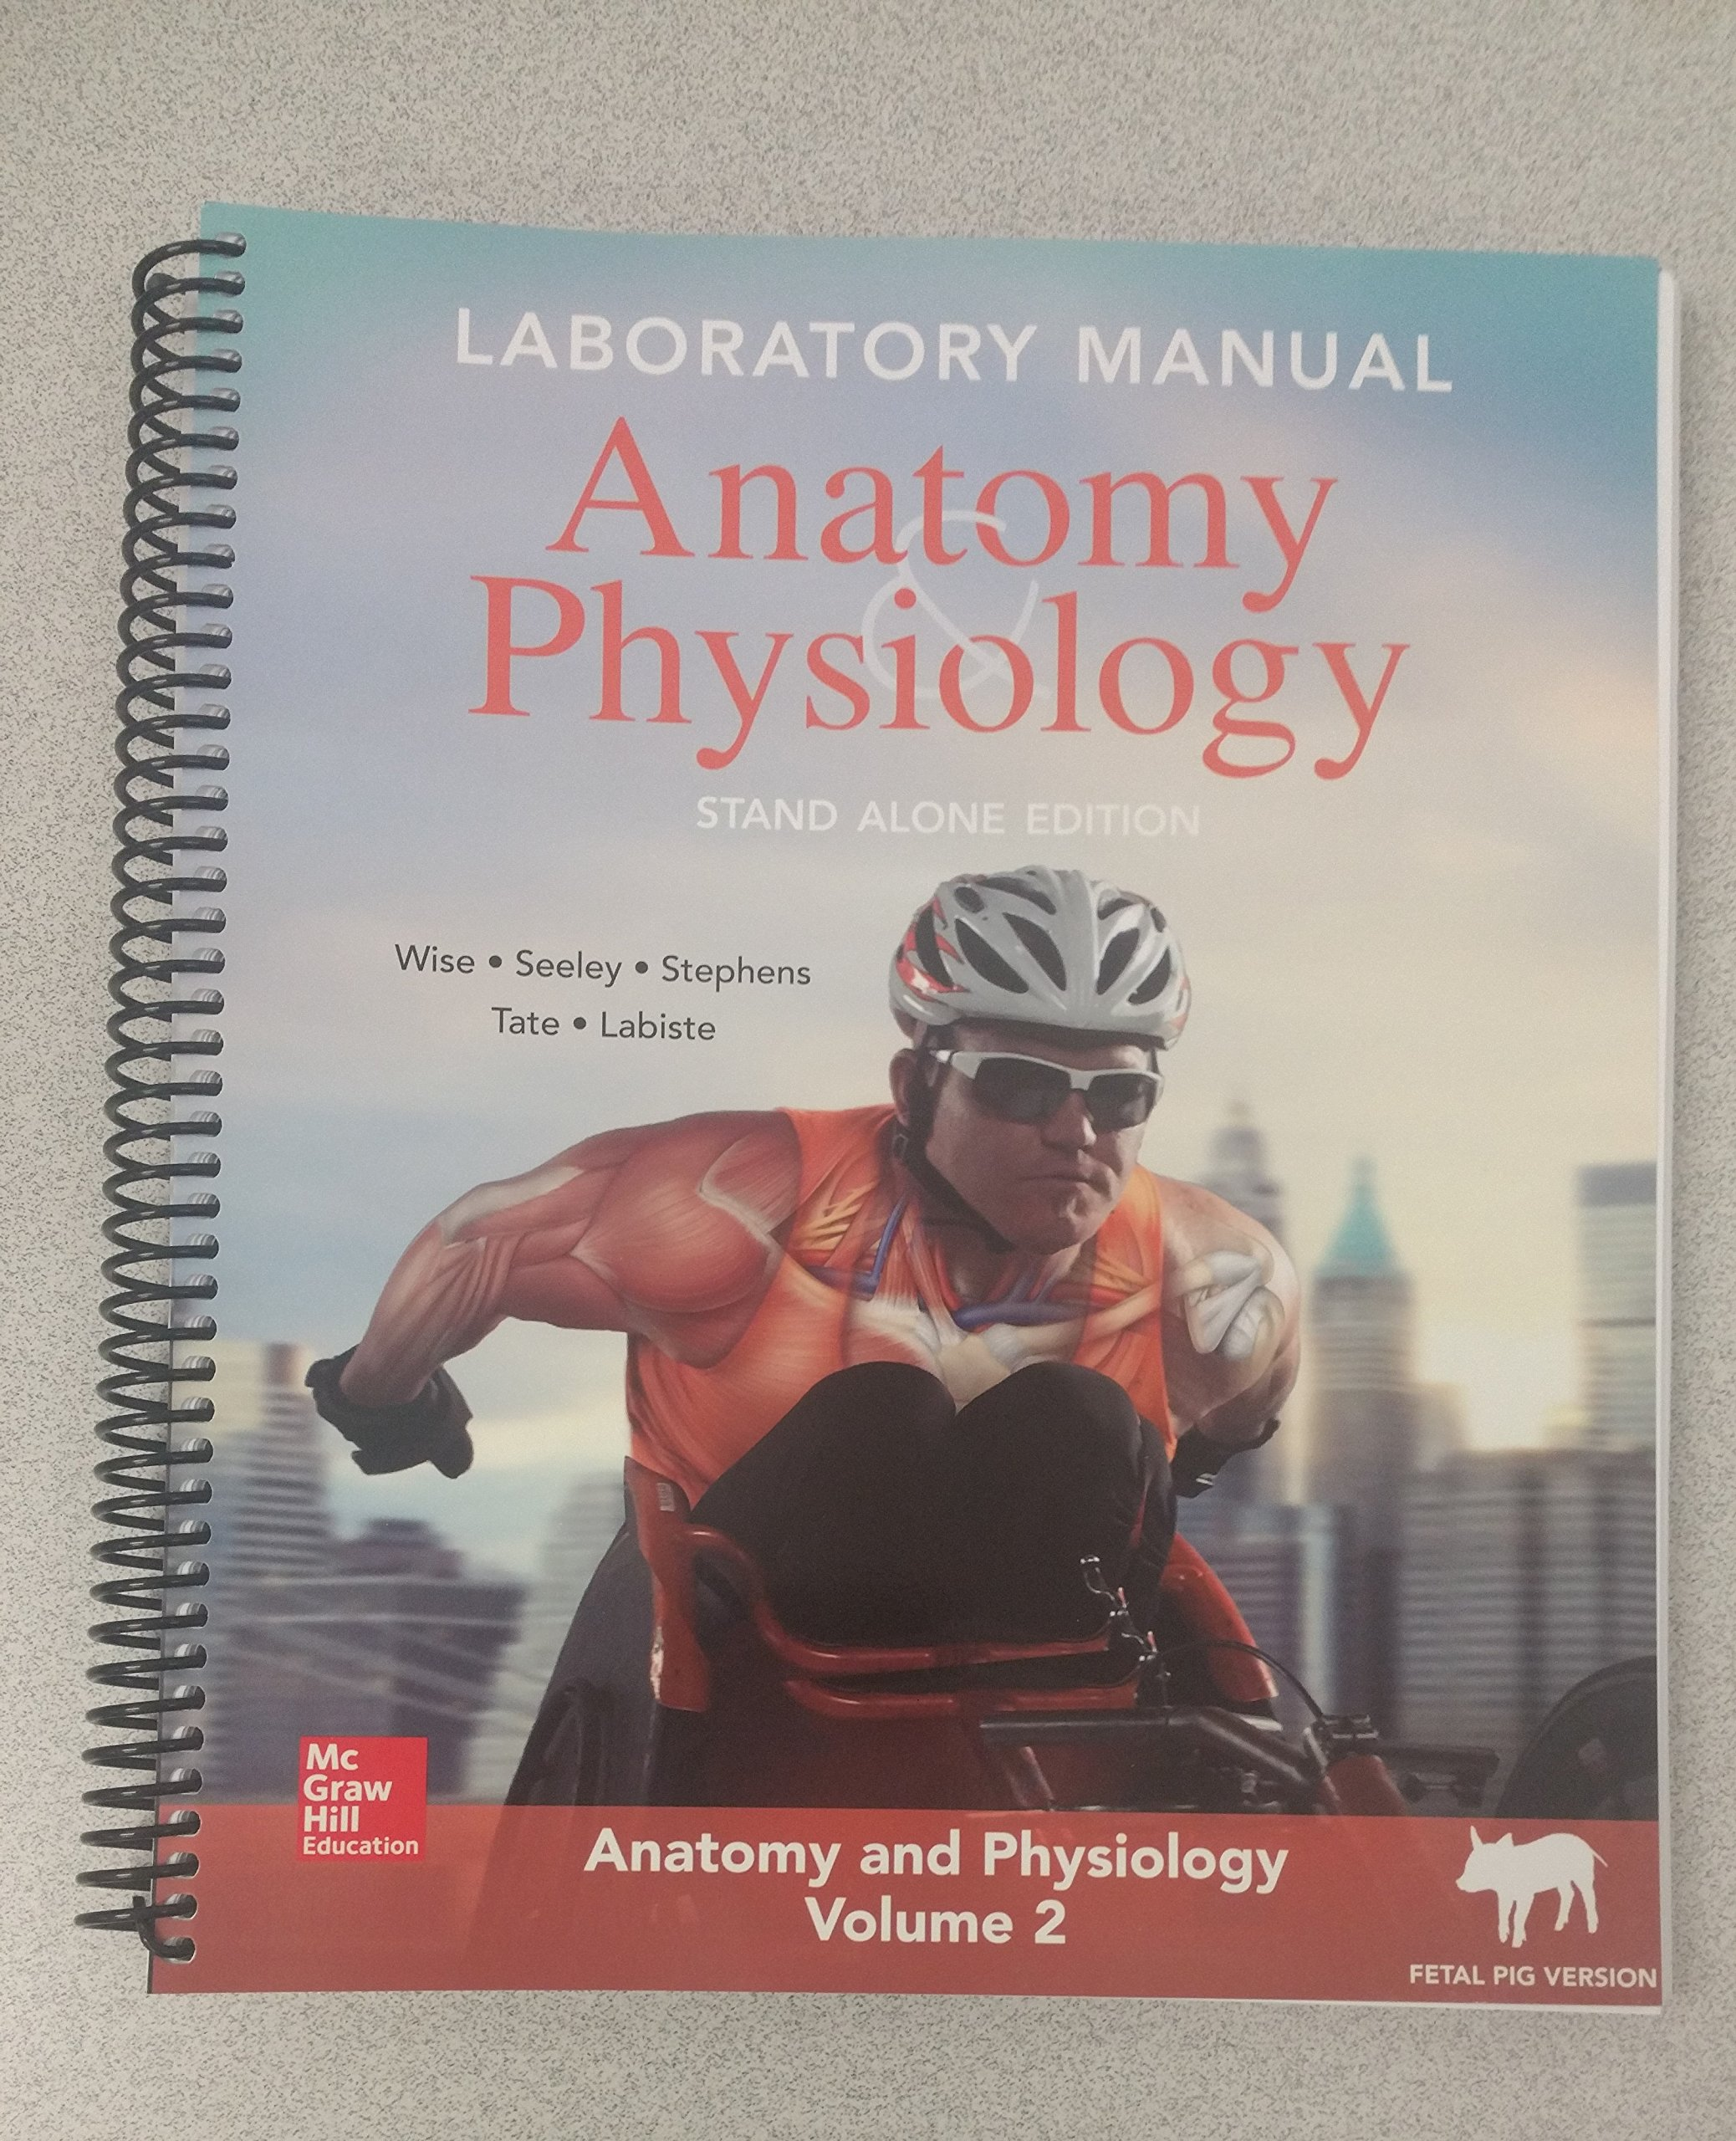 Anatomy and Physiology Laboratory manual, Stand alone Edition ...